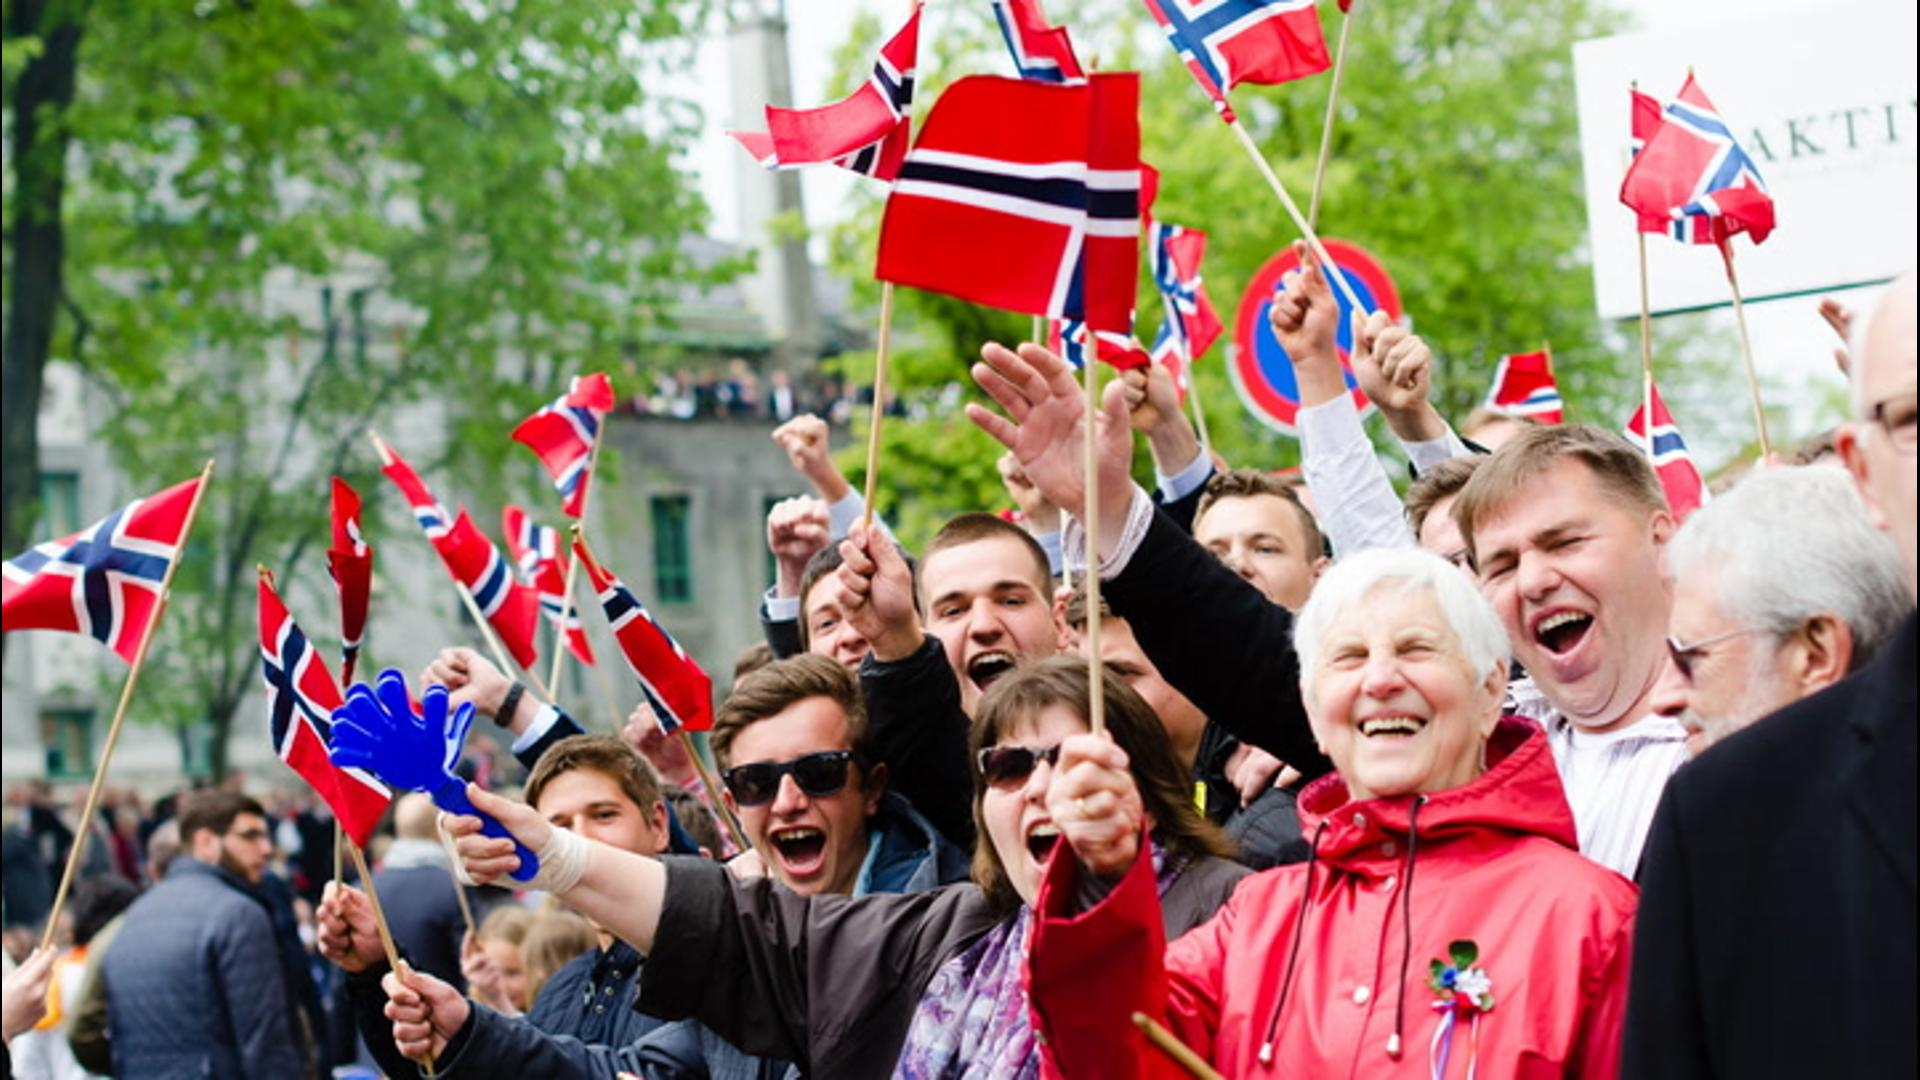 Why people in Finland are so much happier than Americans